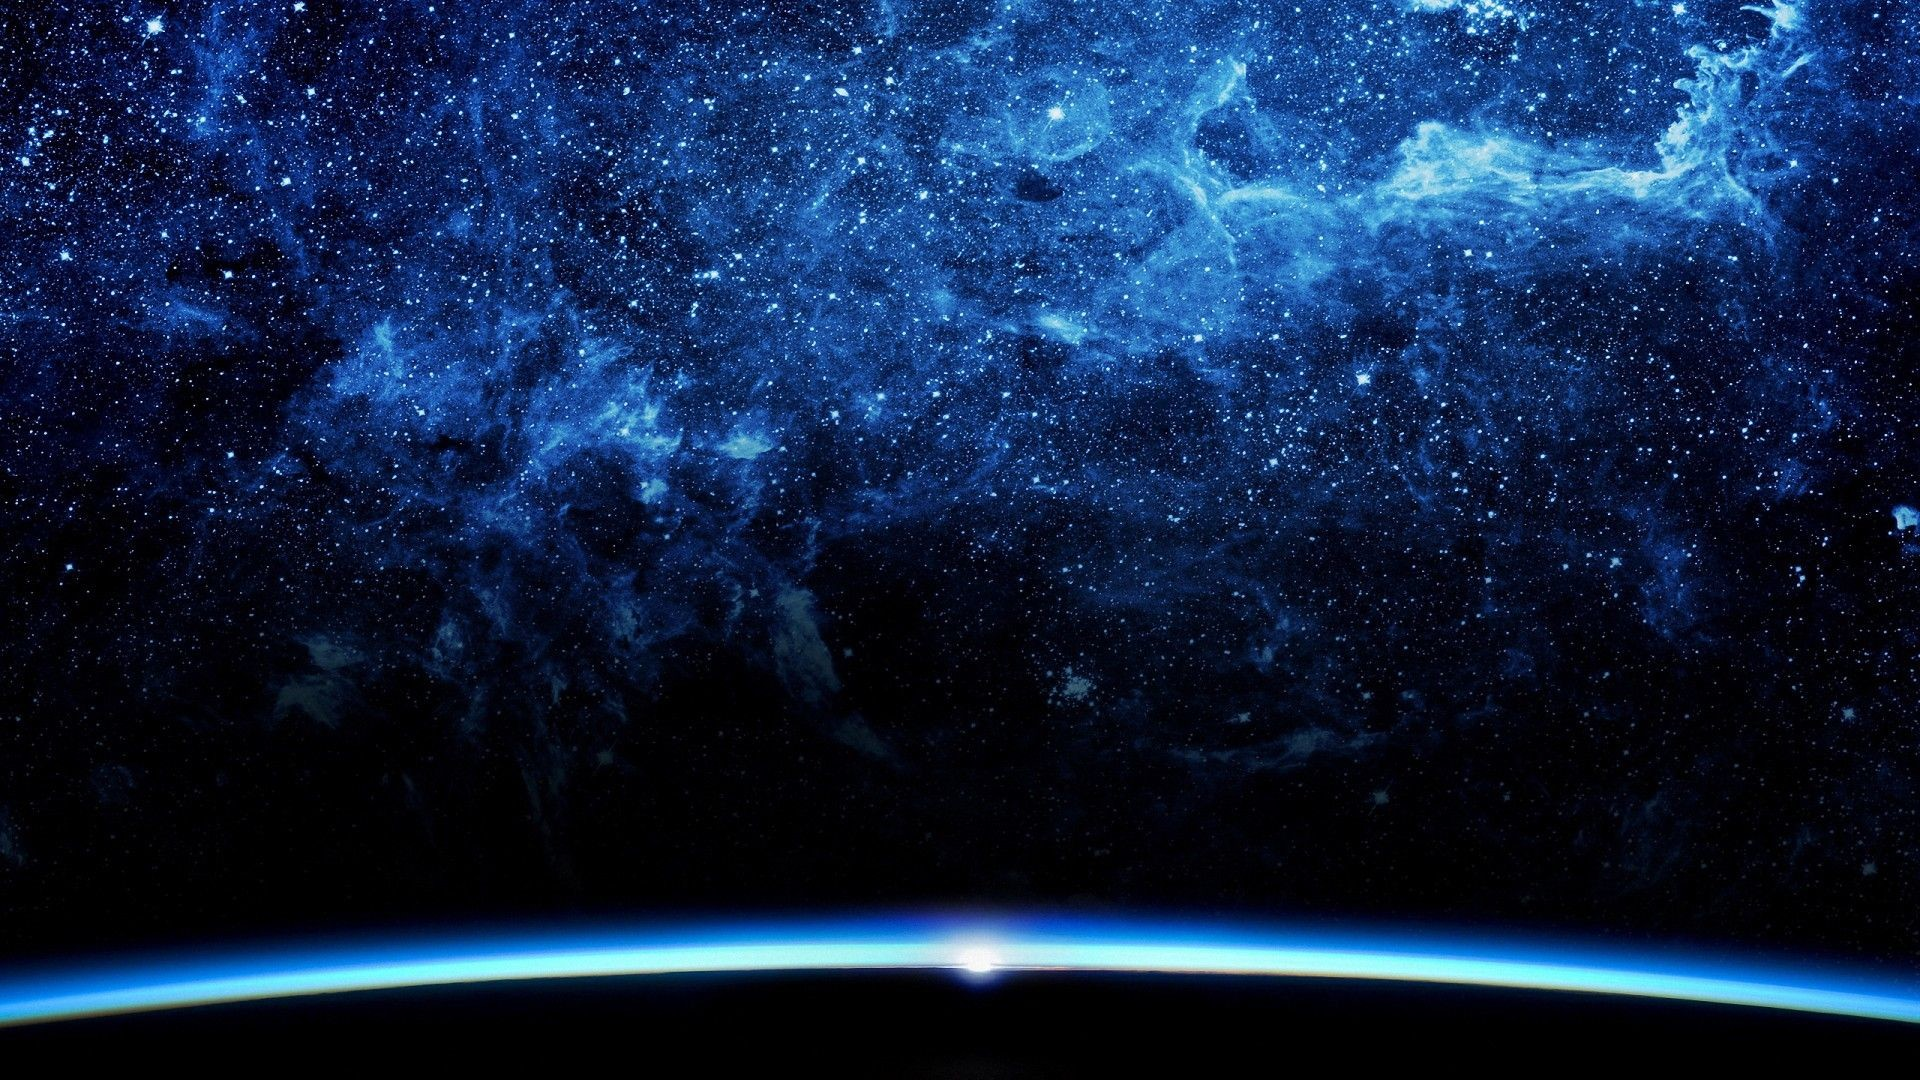 1920x1080 galaxy backgrounds for desktop | Pretty Blue Galaxy Space HD Backgrounds - Desktop  Wallpapers